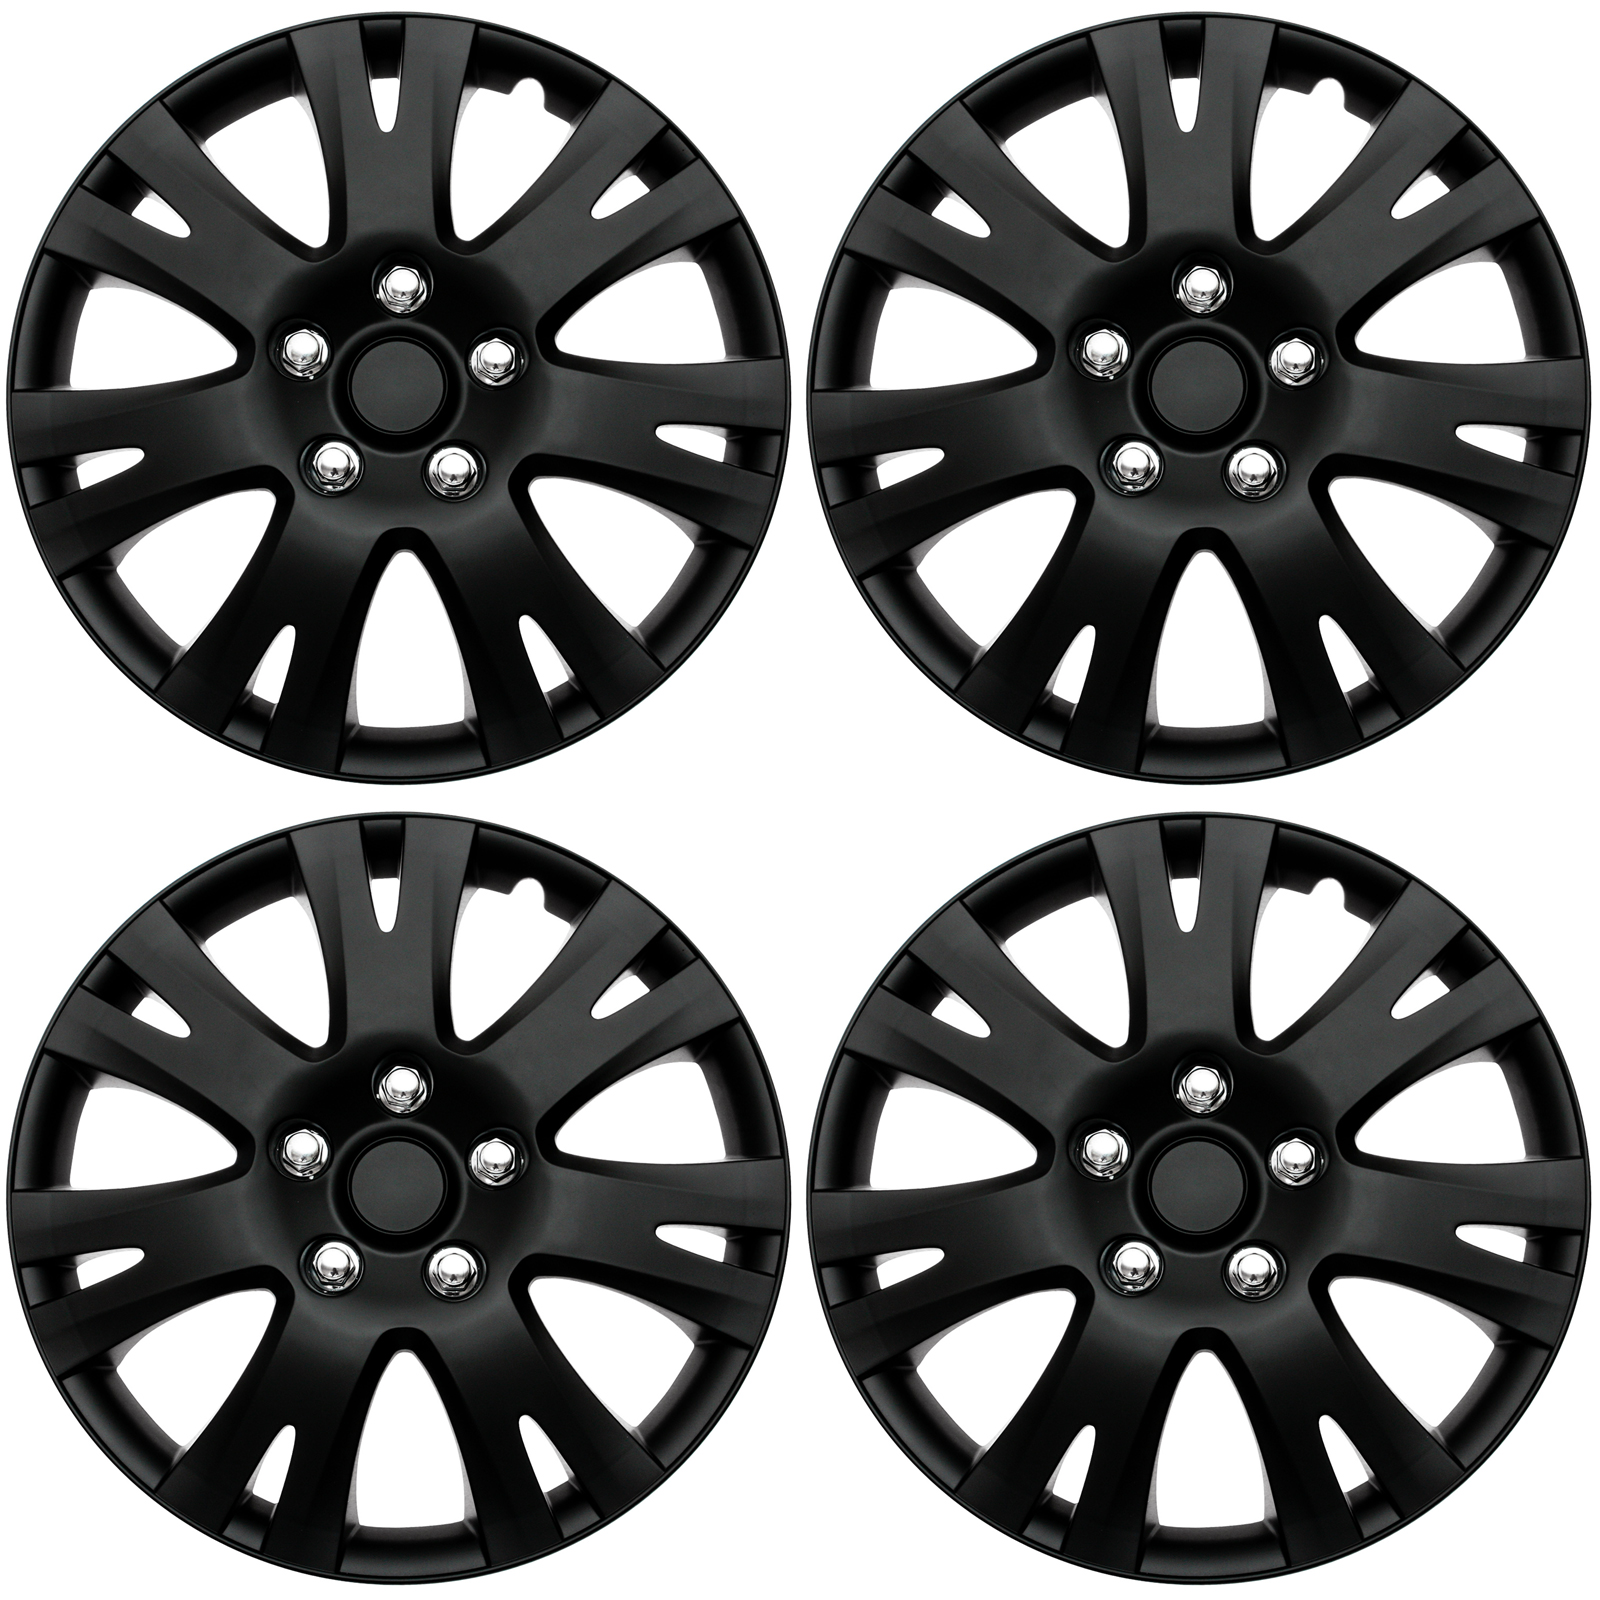 "4 Pc Set of 16"" Matte Black Hub Caps for OEM Steel Wheel Cover Center Cap Covers 643129815652 